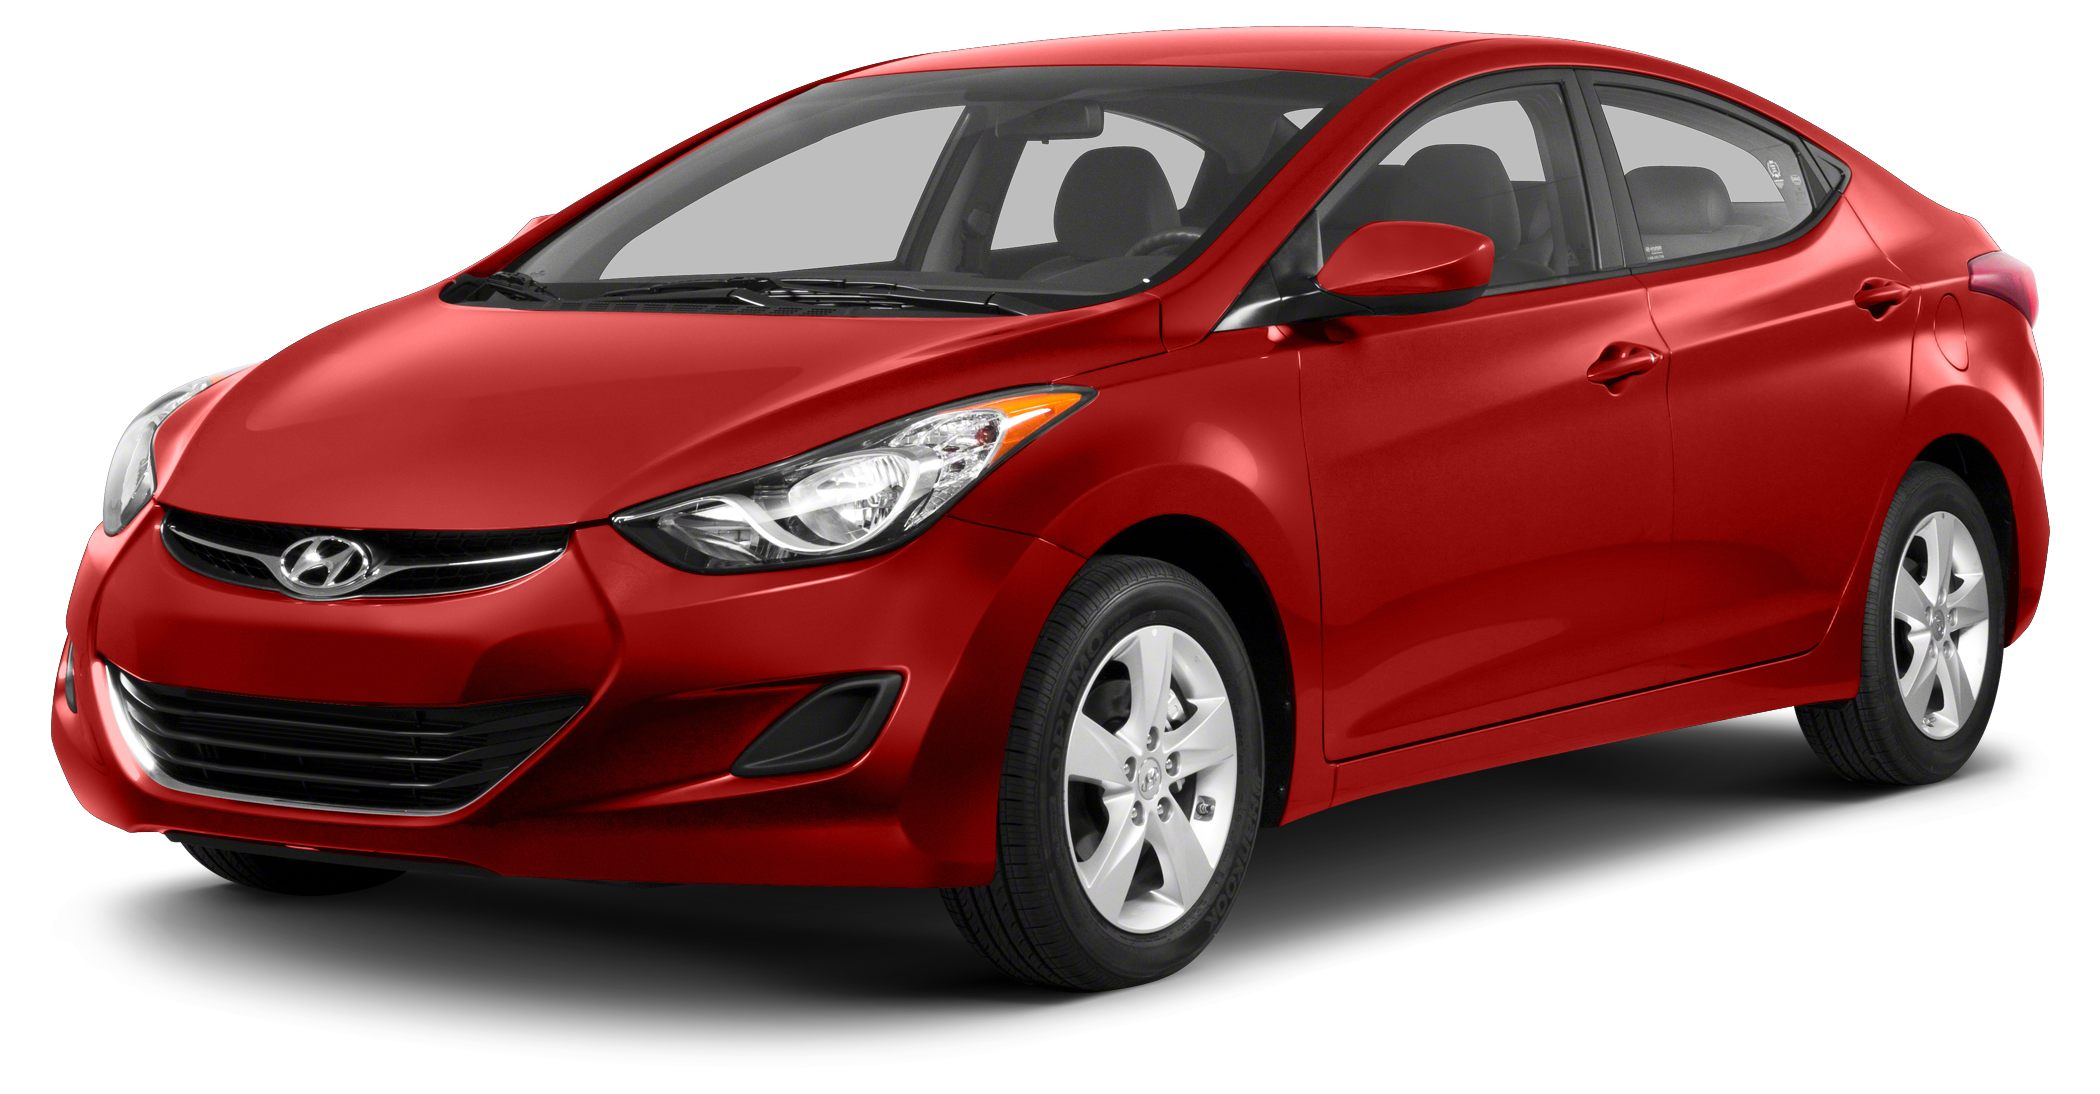 2013 Hyundai Elantra GLS Hyundai Certified and with just 2k miles on this one owner Elantra and co